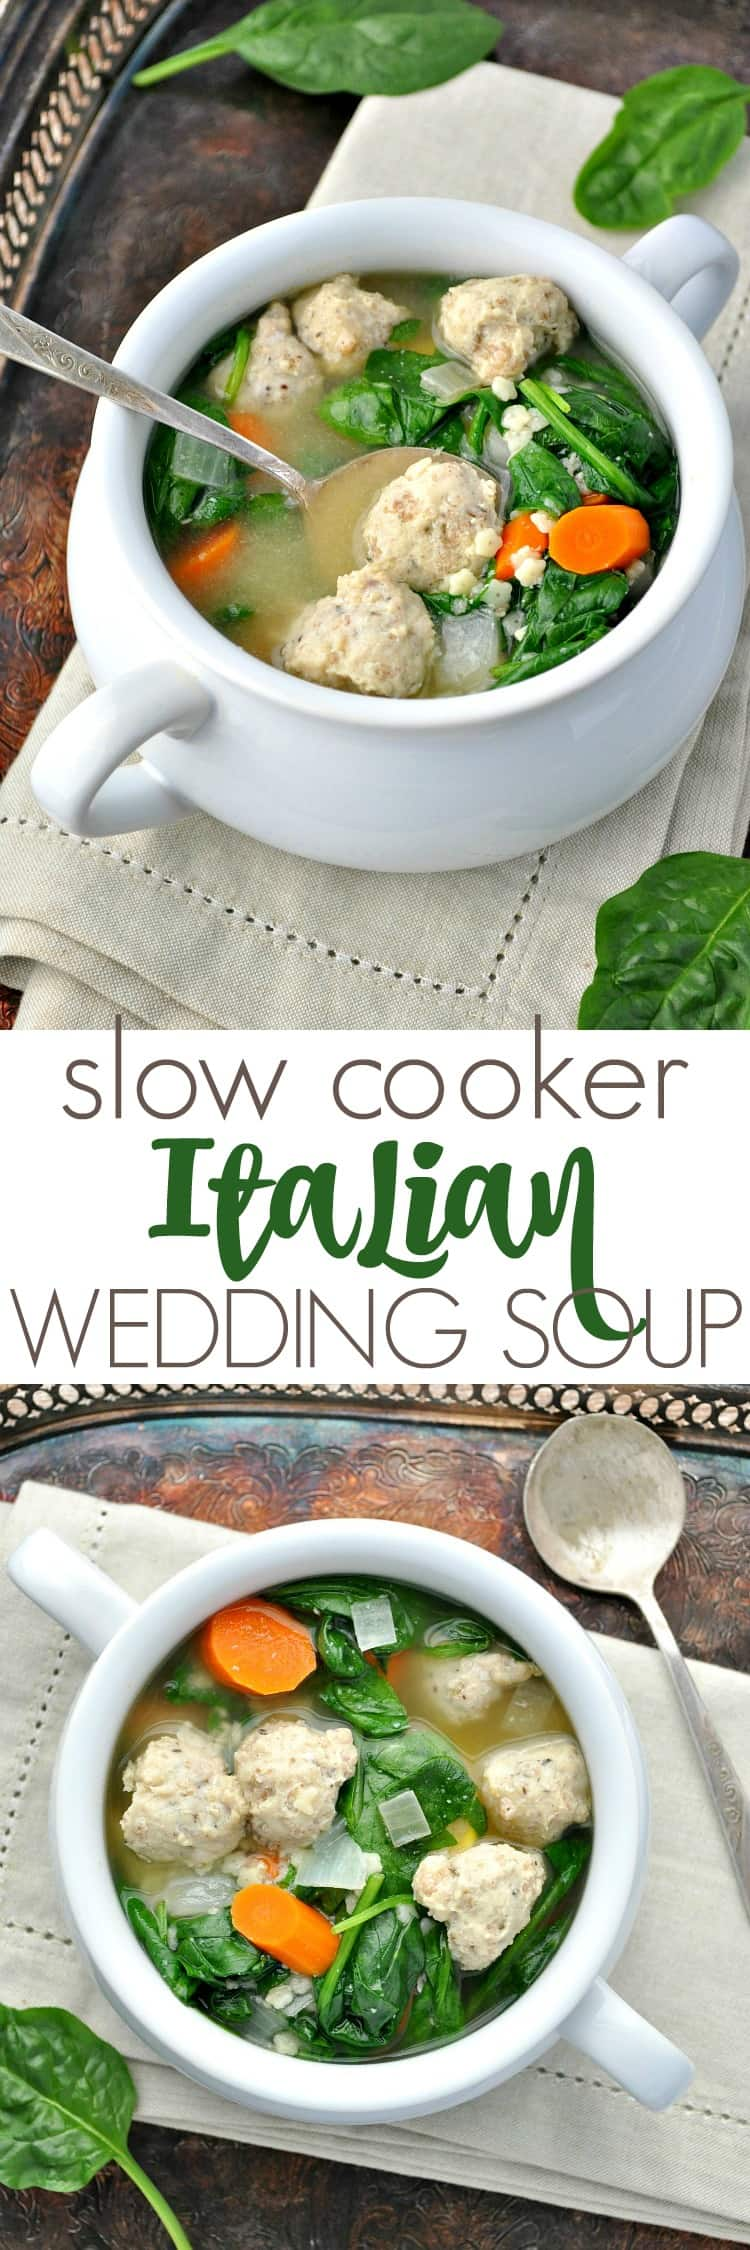 tender pasta, and fresh veggies, this Slow Cooker Italian Wedding Soup ...